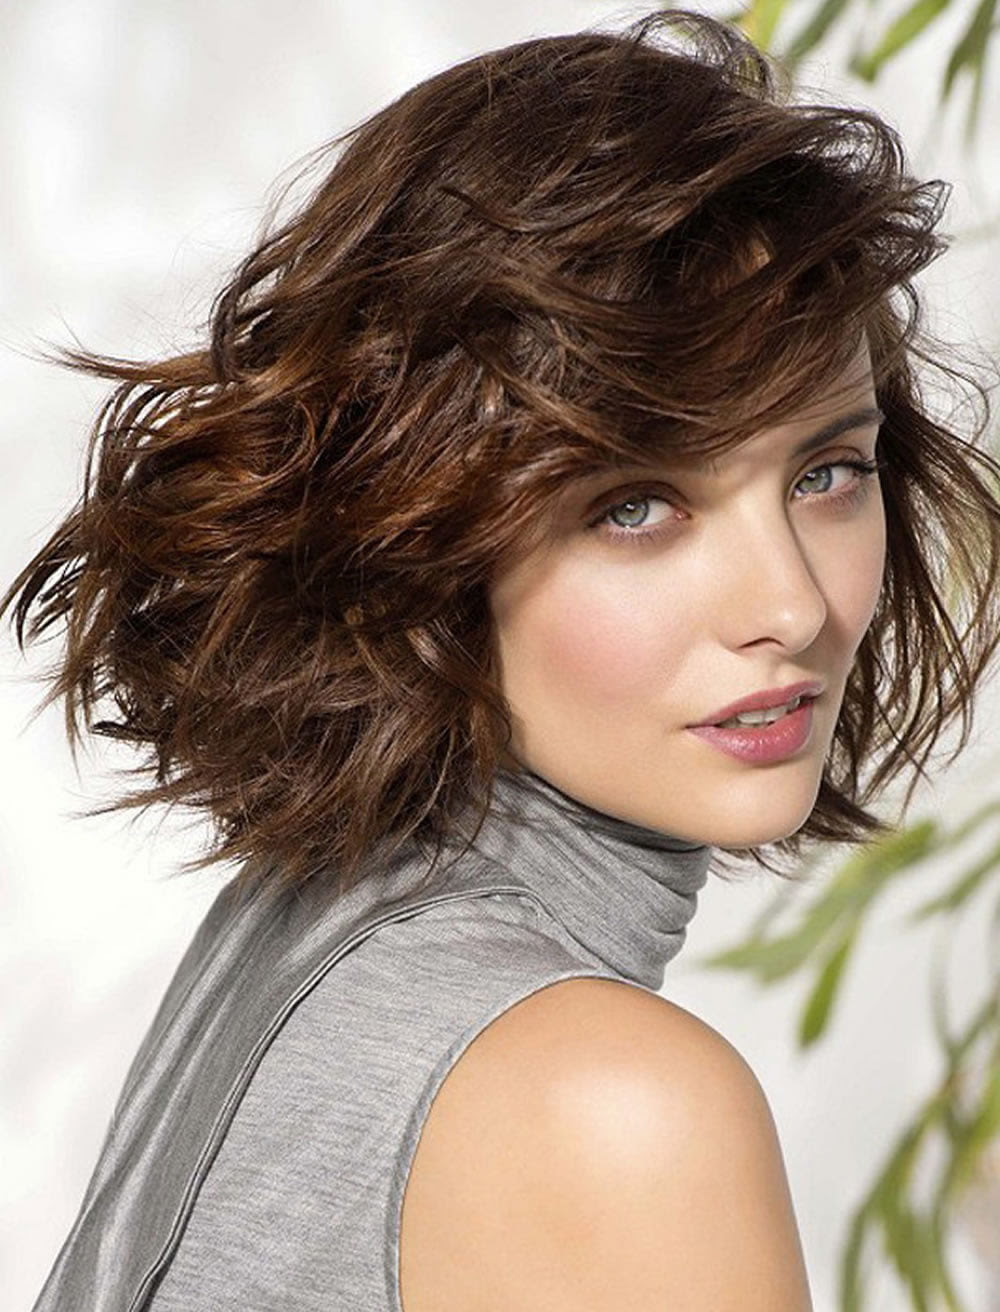 20 Easy Bob Hairstyles For Short Hair Spring Summer 20182019 Page 2